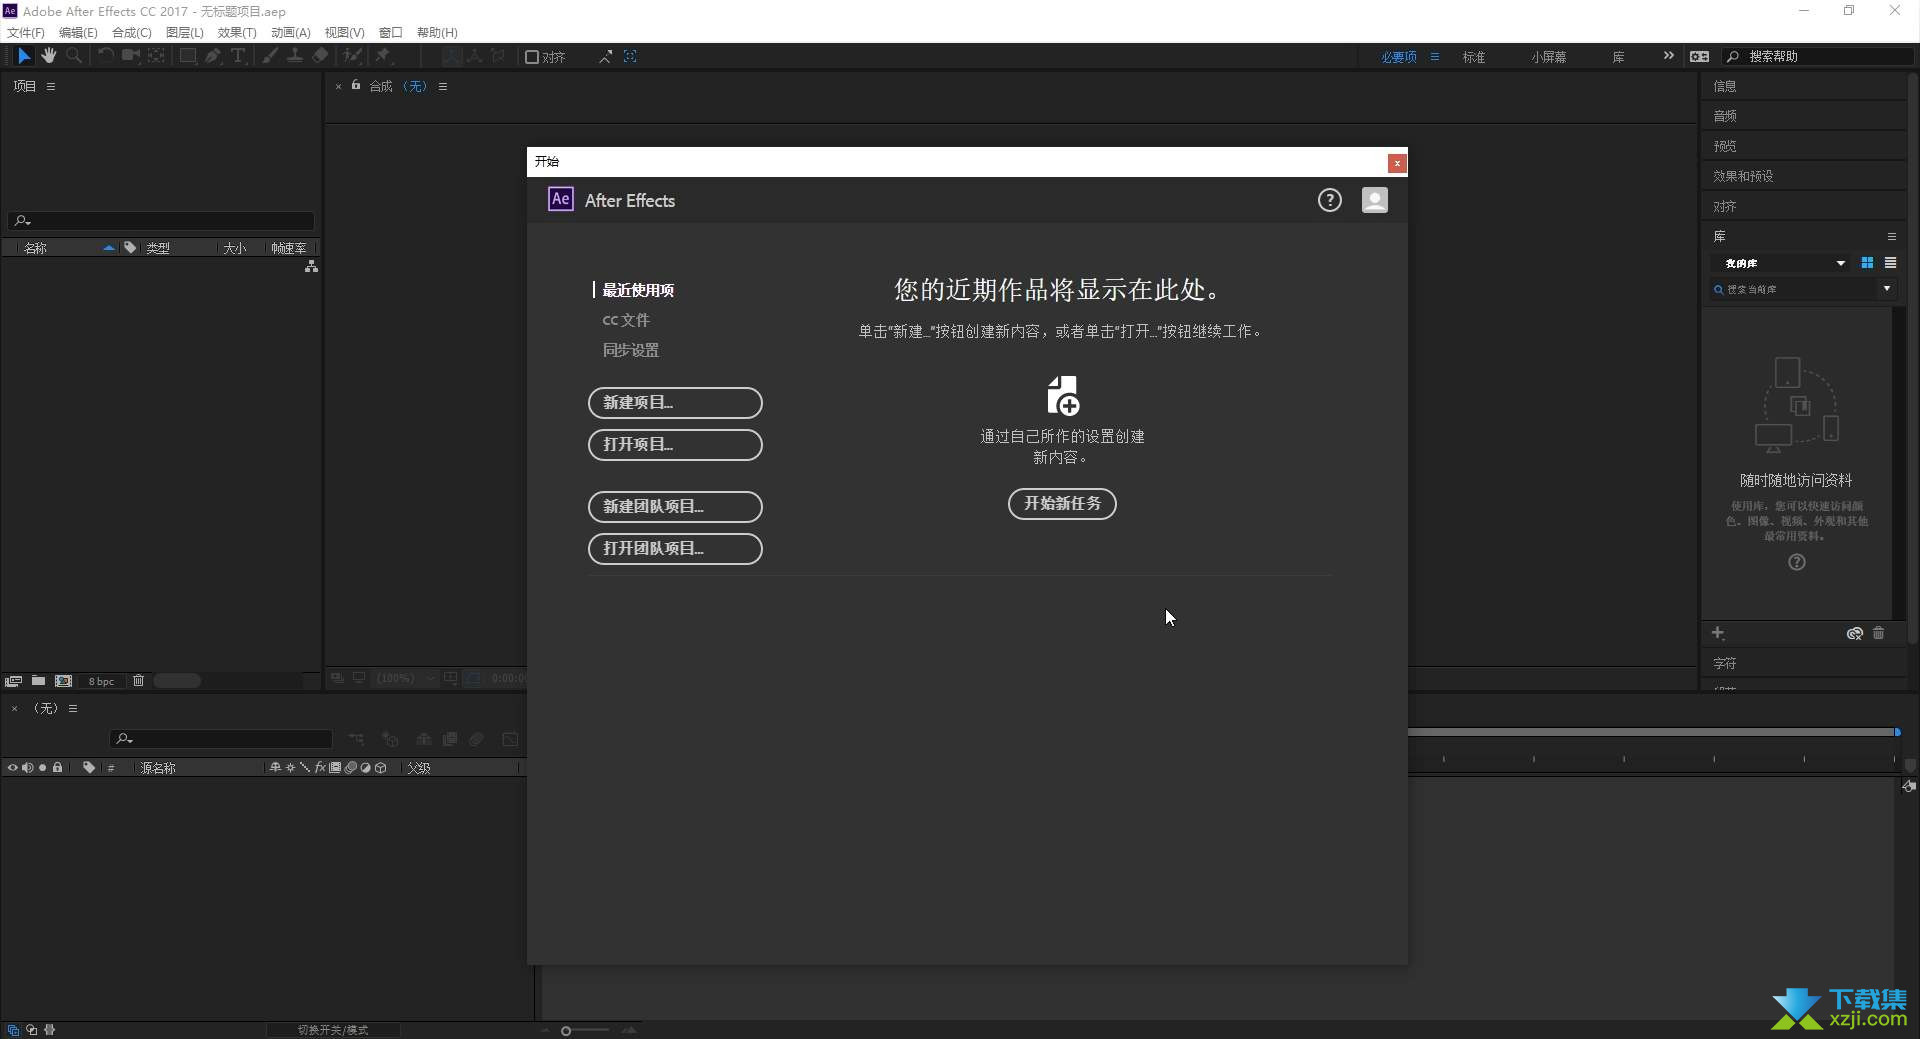 After Effects 2020界面